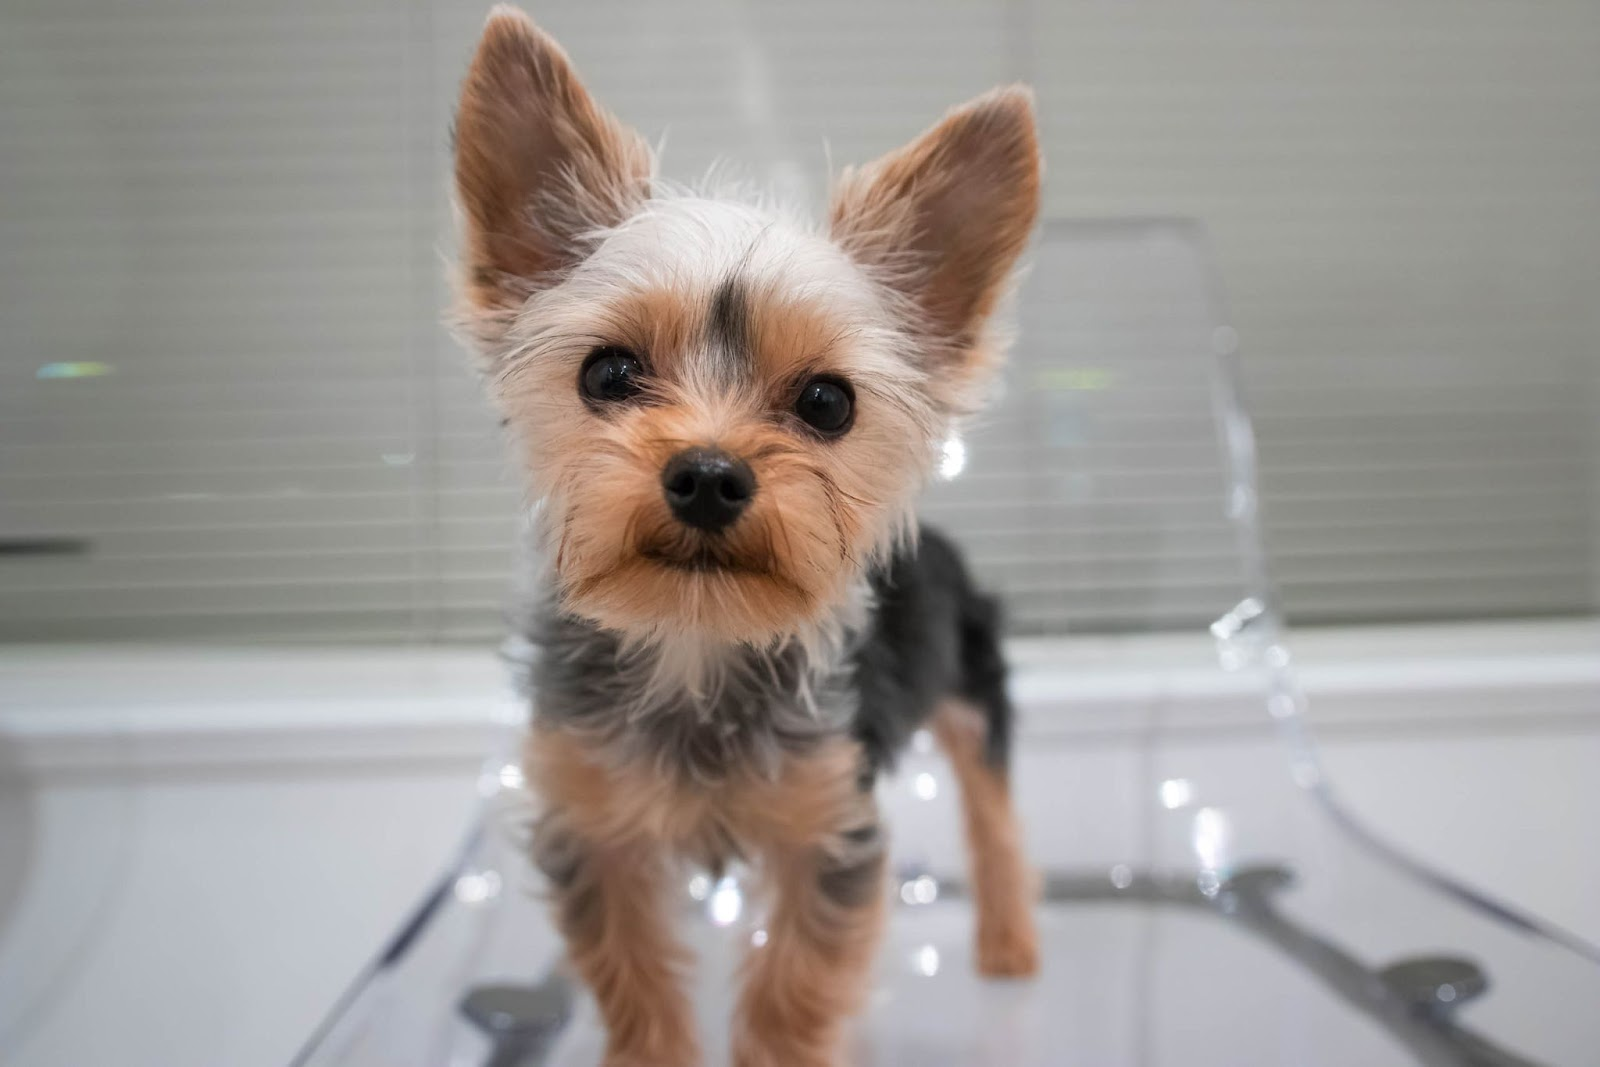 How to Groom a Yorkie With Matted Hair?